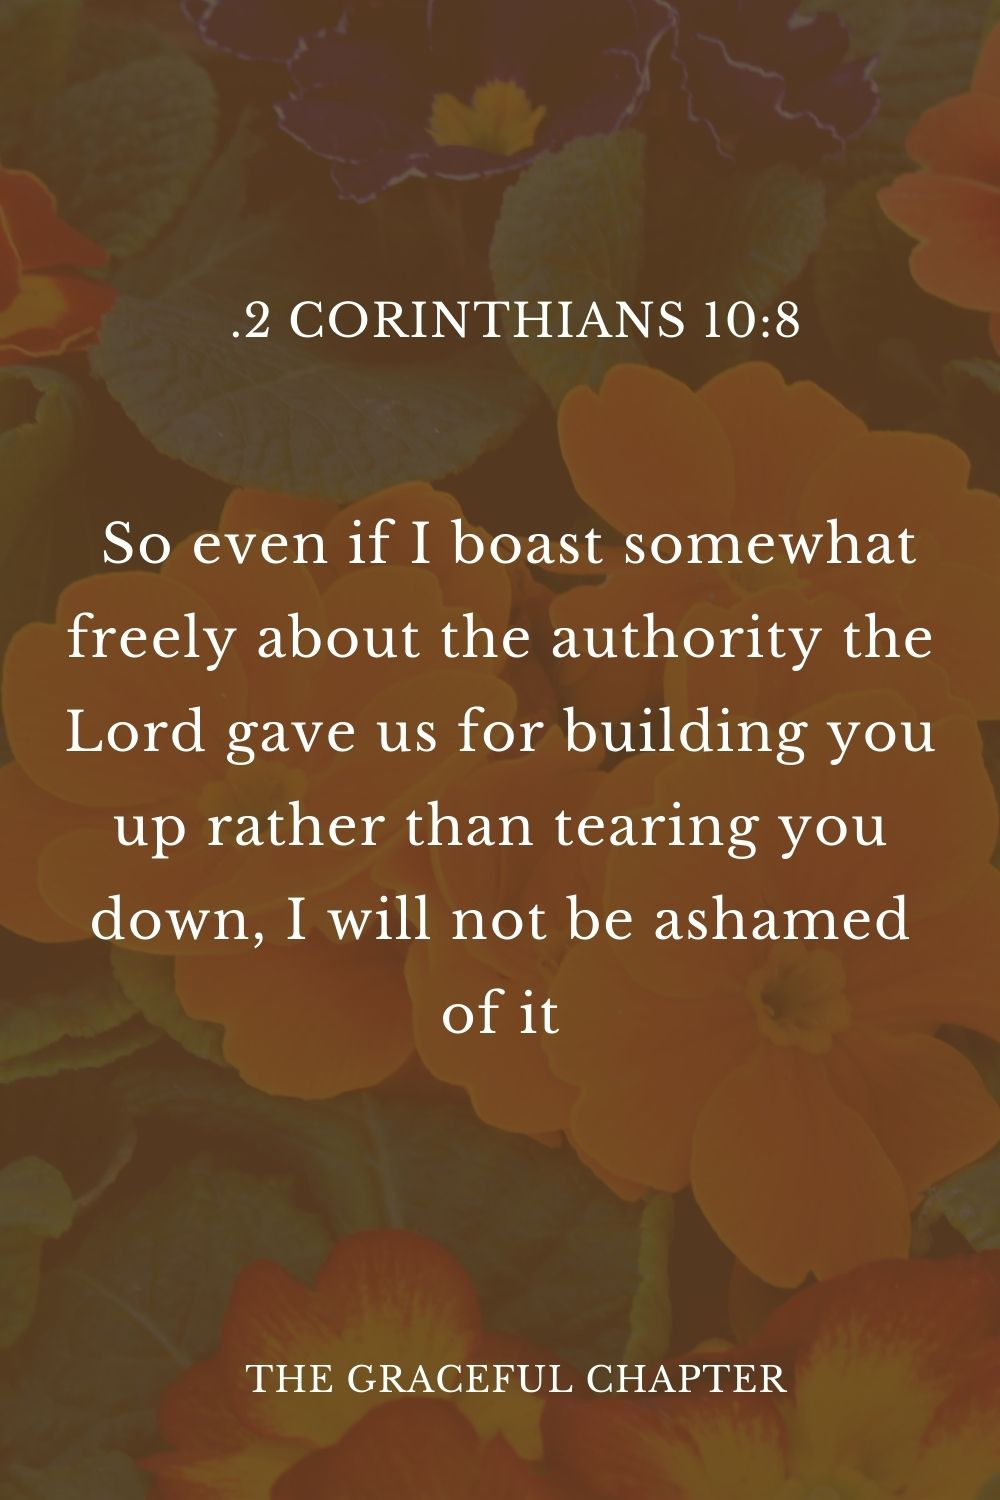 8 So even if I boast somewhat freely about the authority the Lord gave us for building you up rather than tearing you down, I will not be ashamed of it.2 Corinthians 10:8